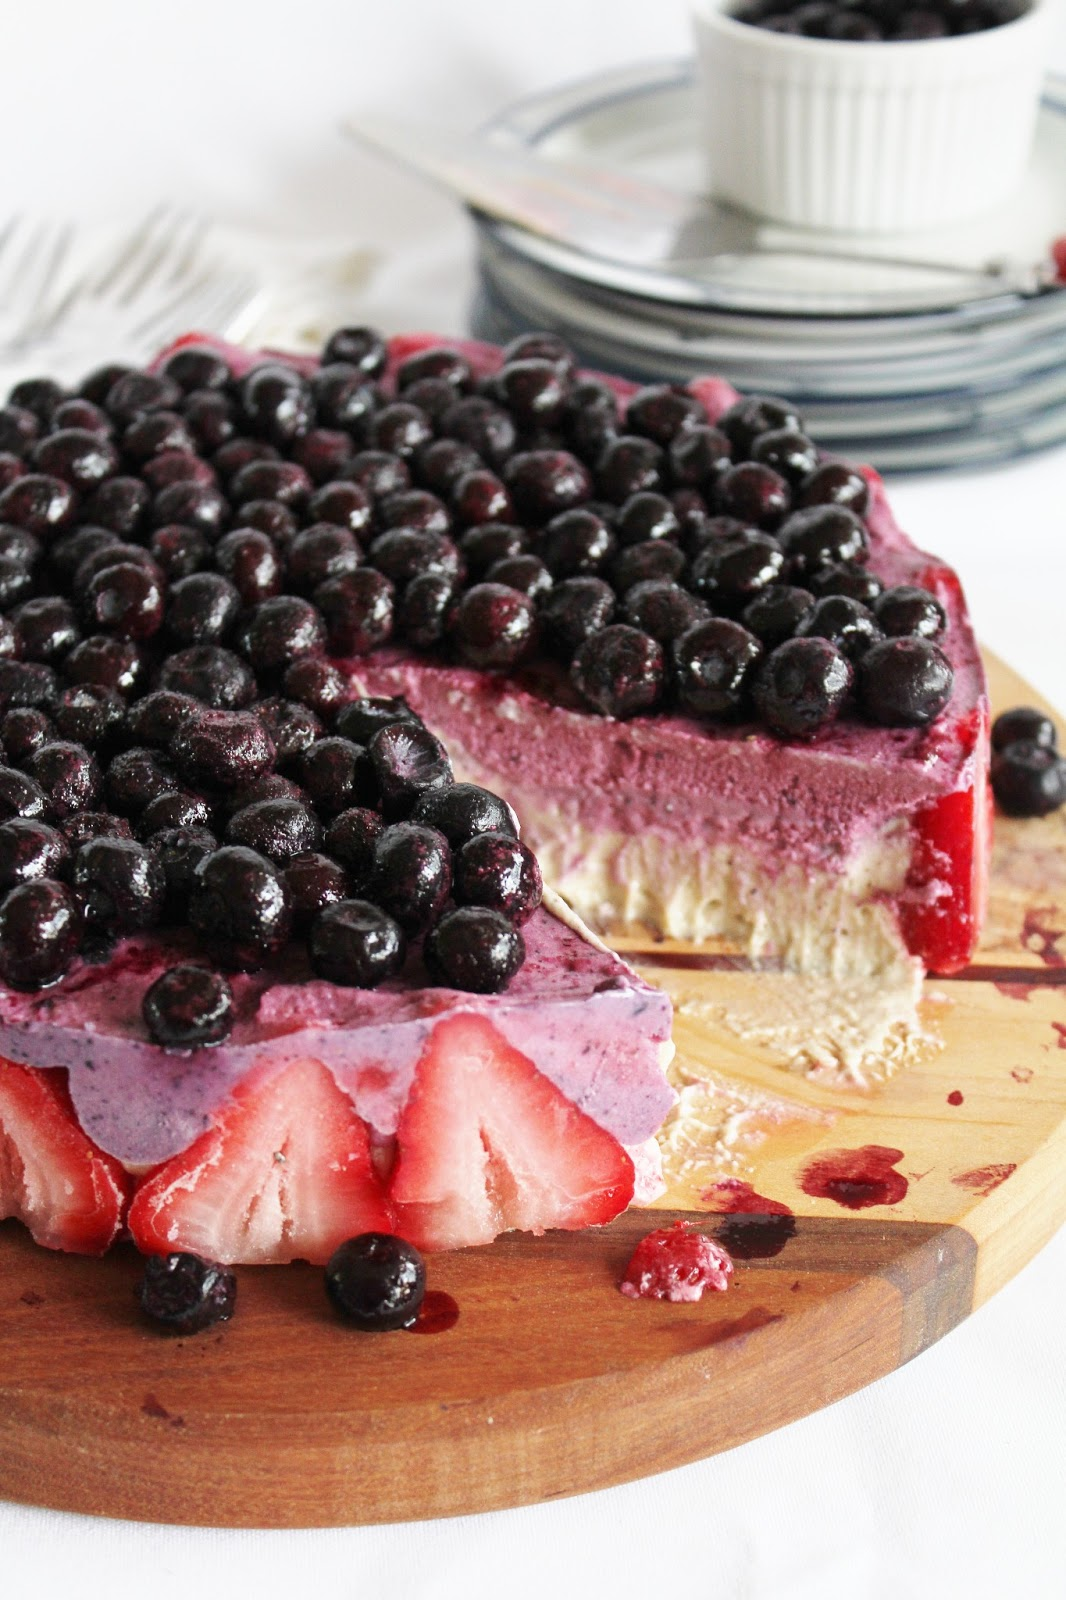 This Rawsome Vegan Life: blueberry strawberry banana ice cream cake